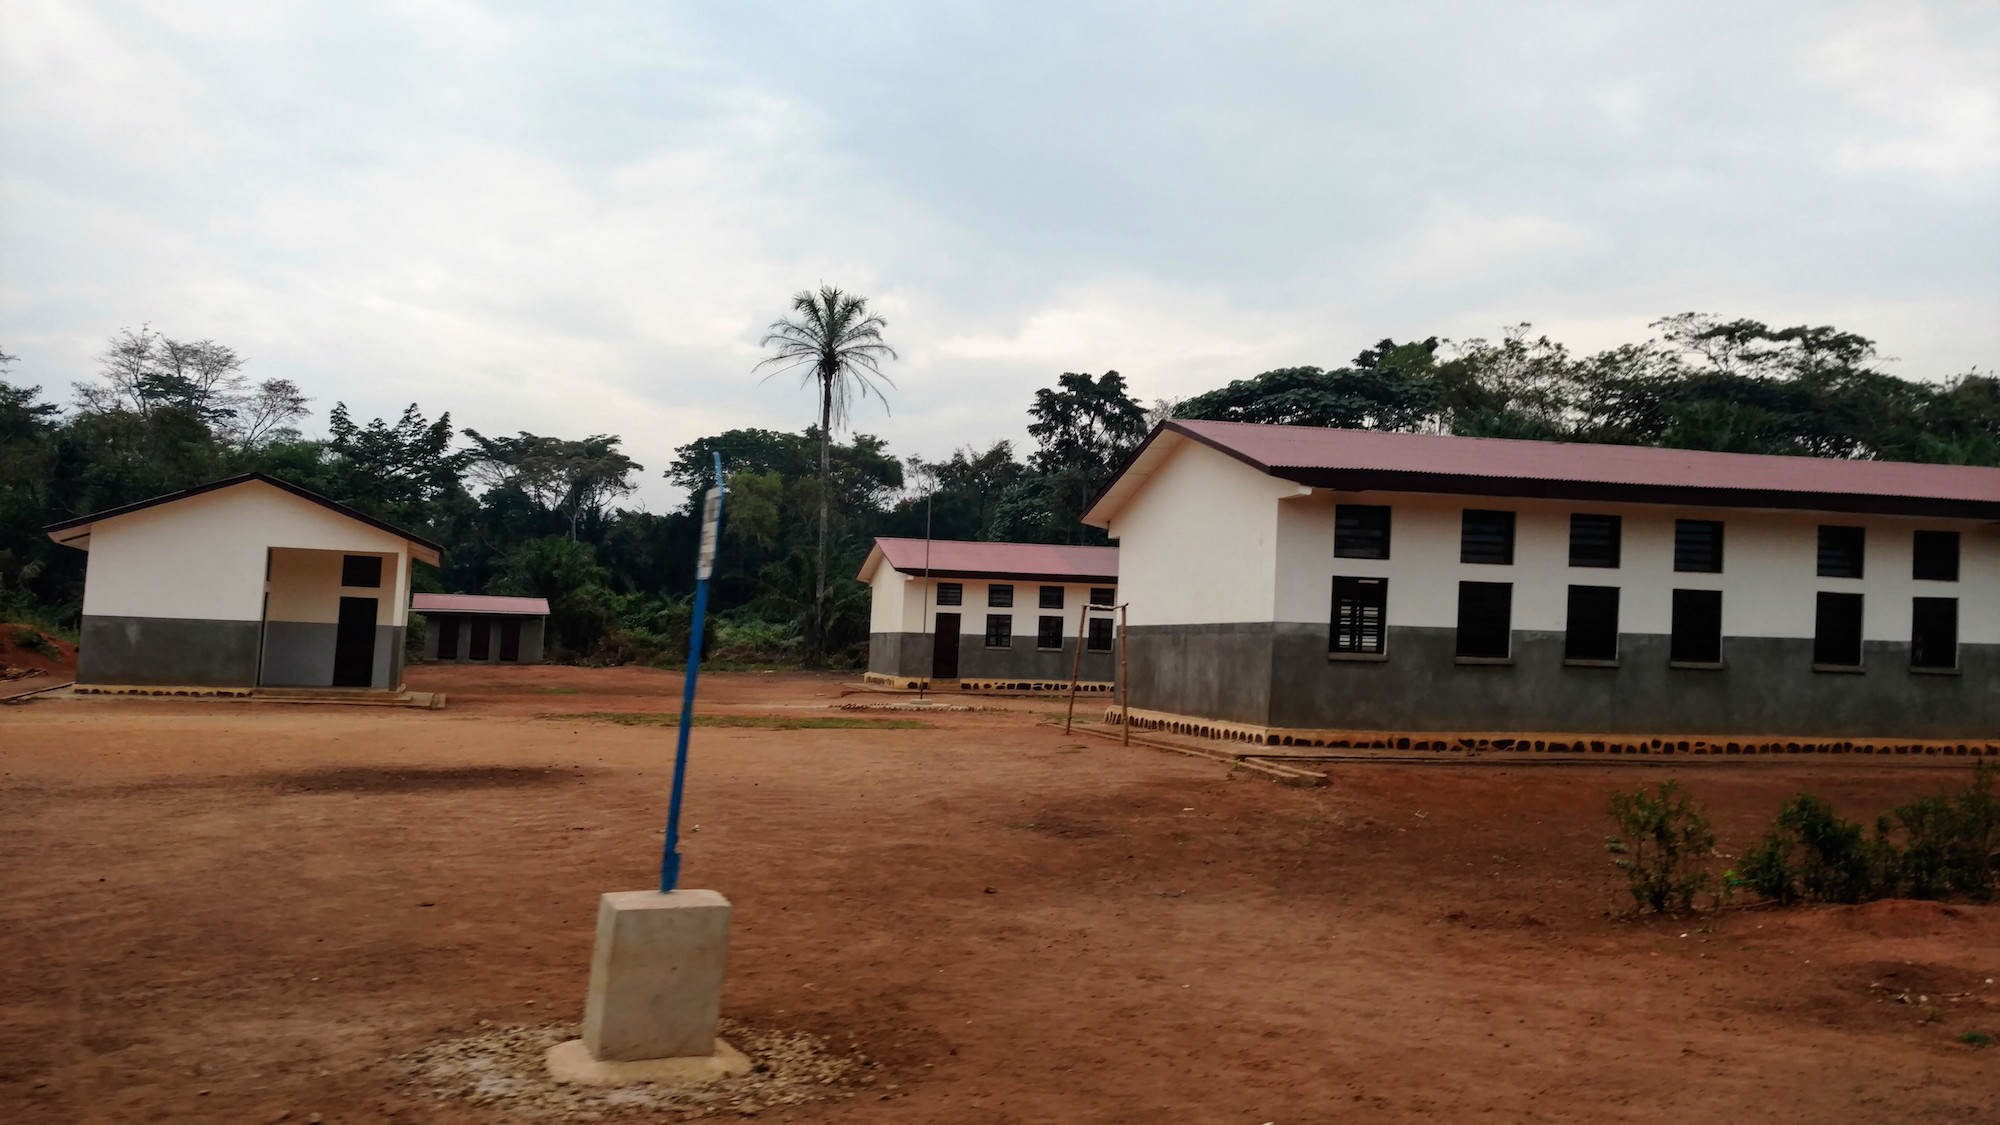 Primary and Secondary School Buildings in the Democratic Republic of the Congo January 2017